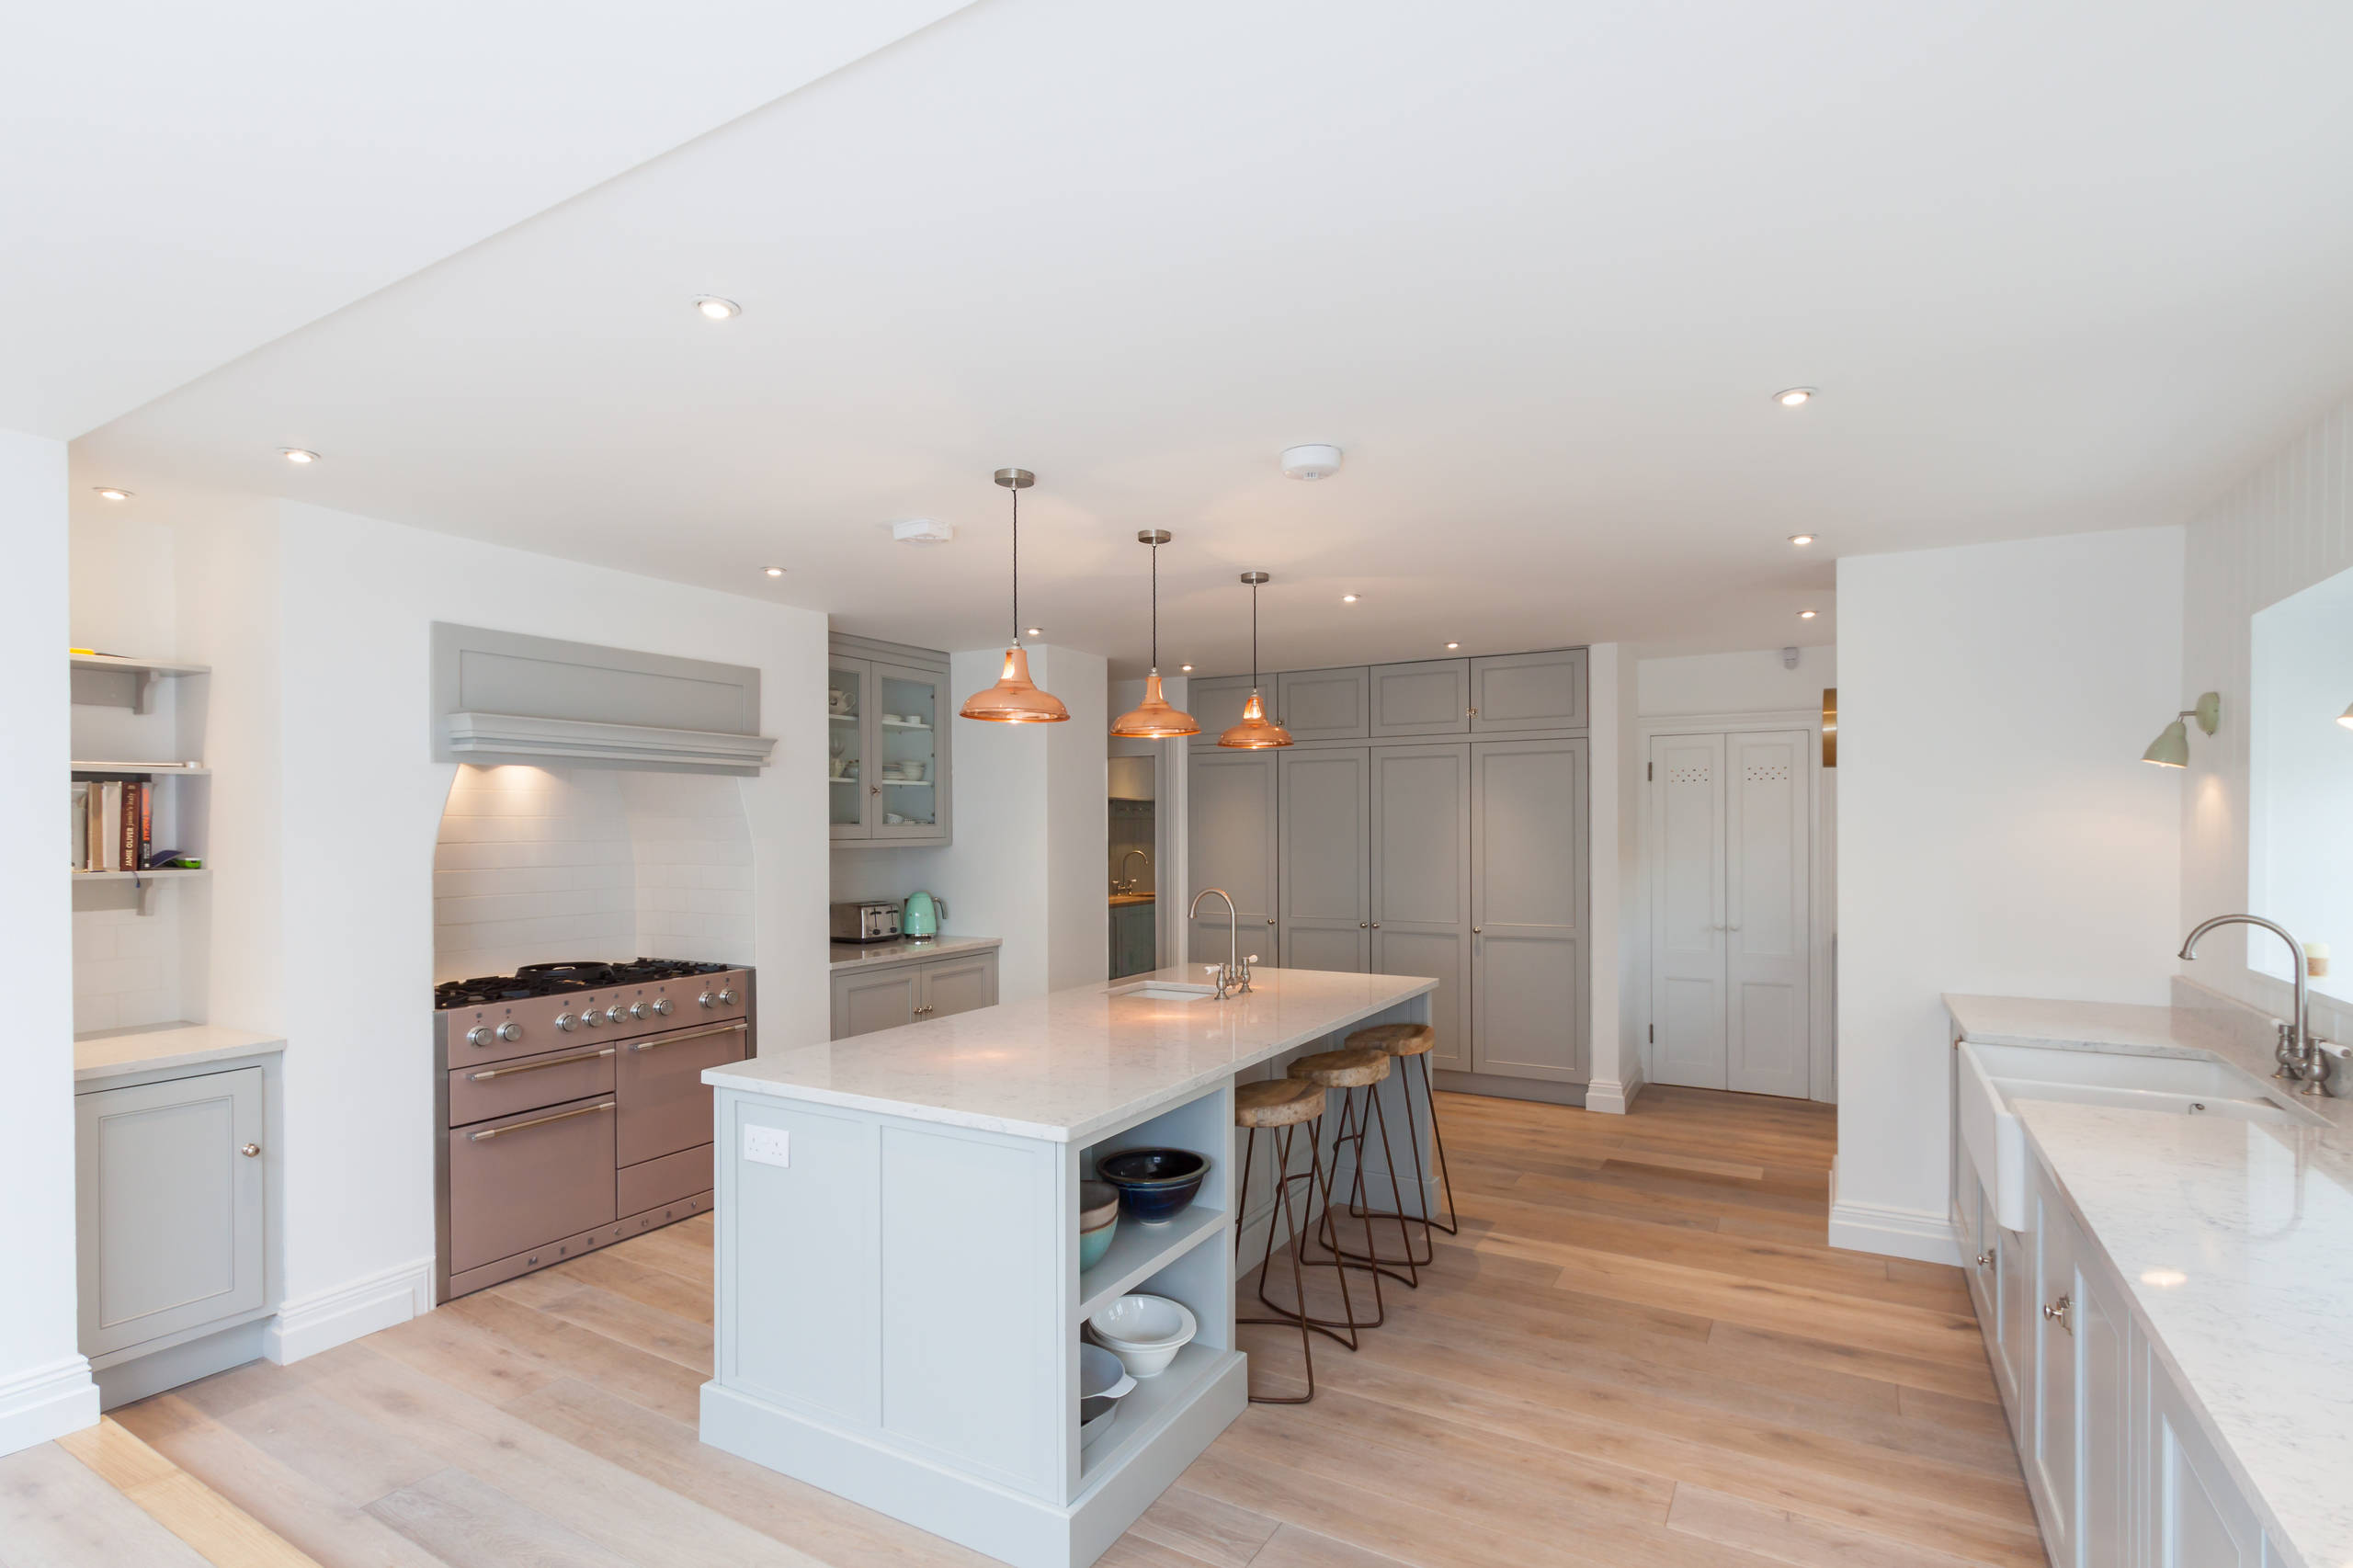 Domestic lighting scheme featuring pendant lights in the kitchen